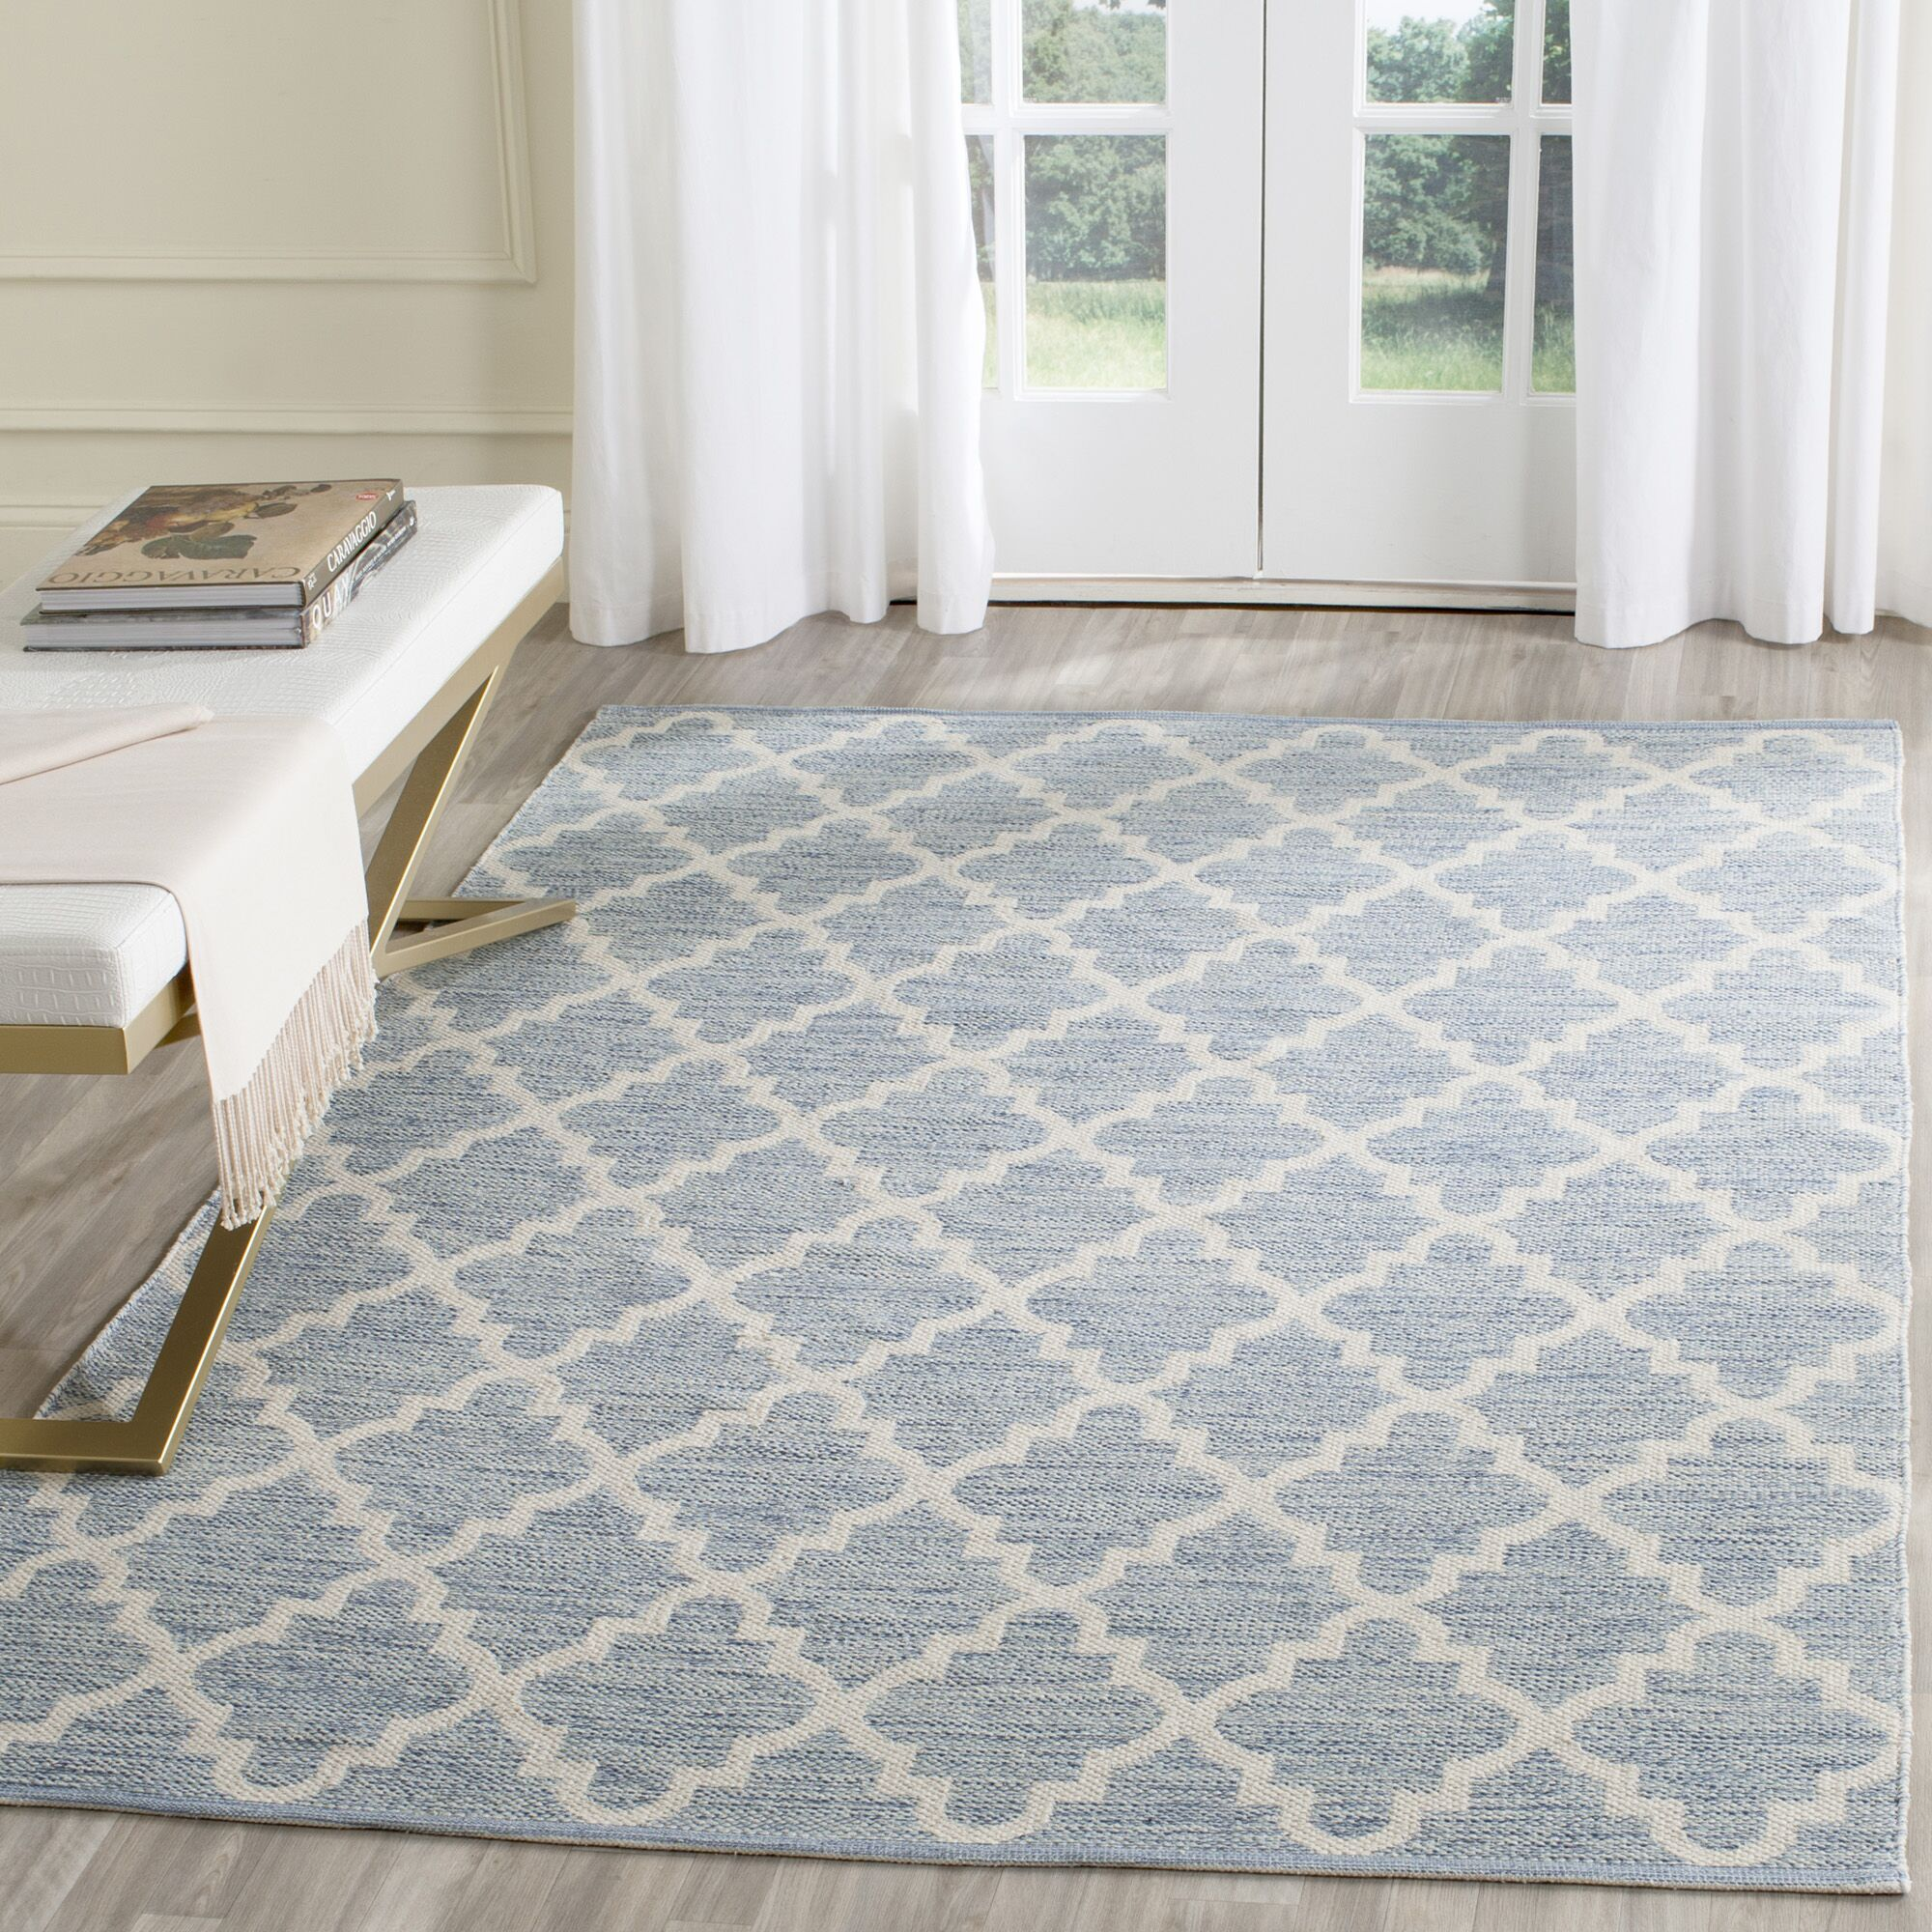 Valley Hand-Woven Light Blue/Ivory Area Rug Rug Size: Rectangle 5' x 7'